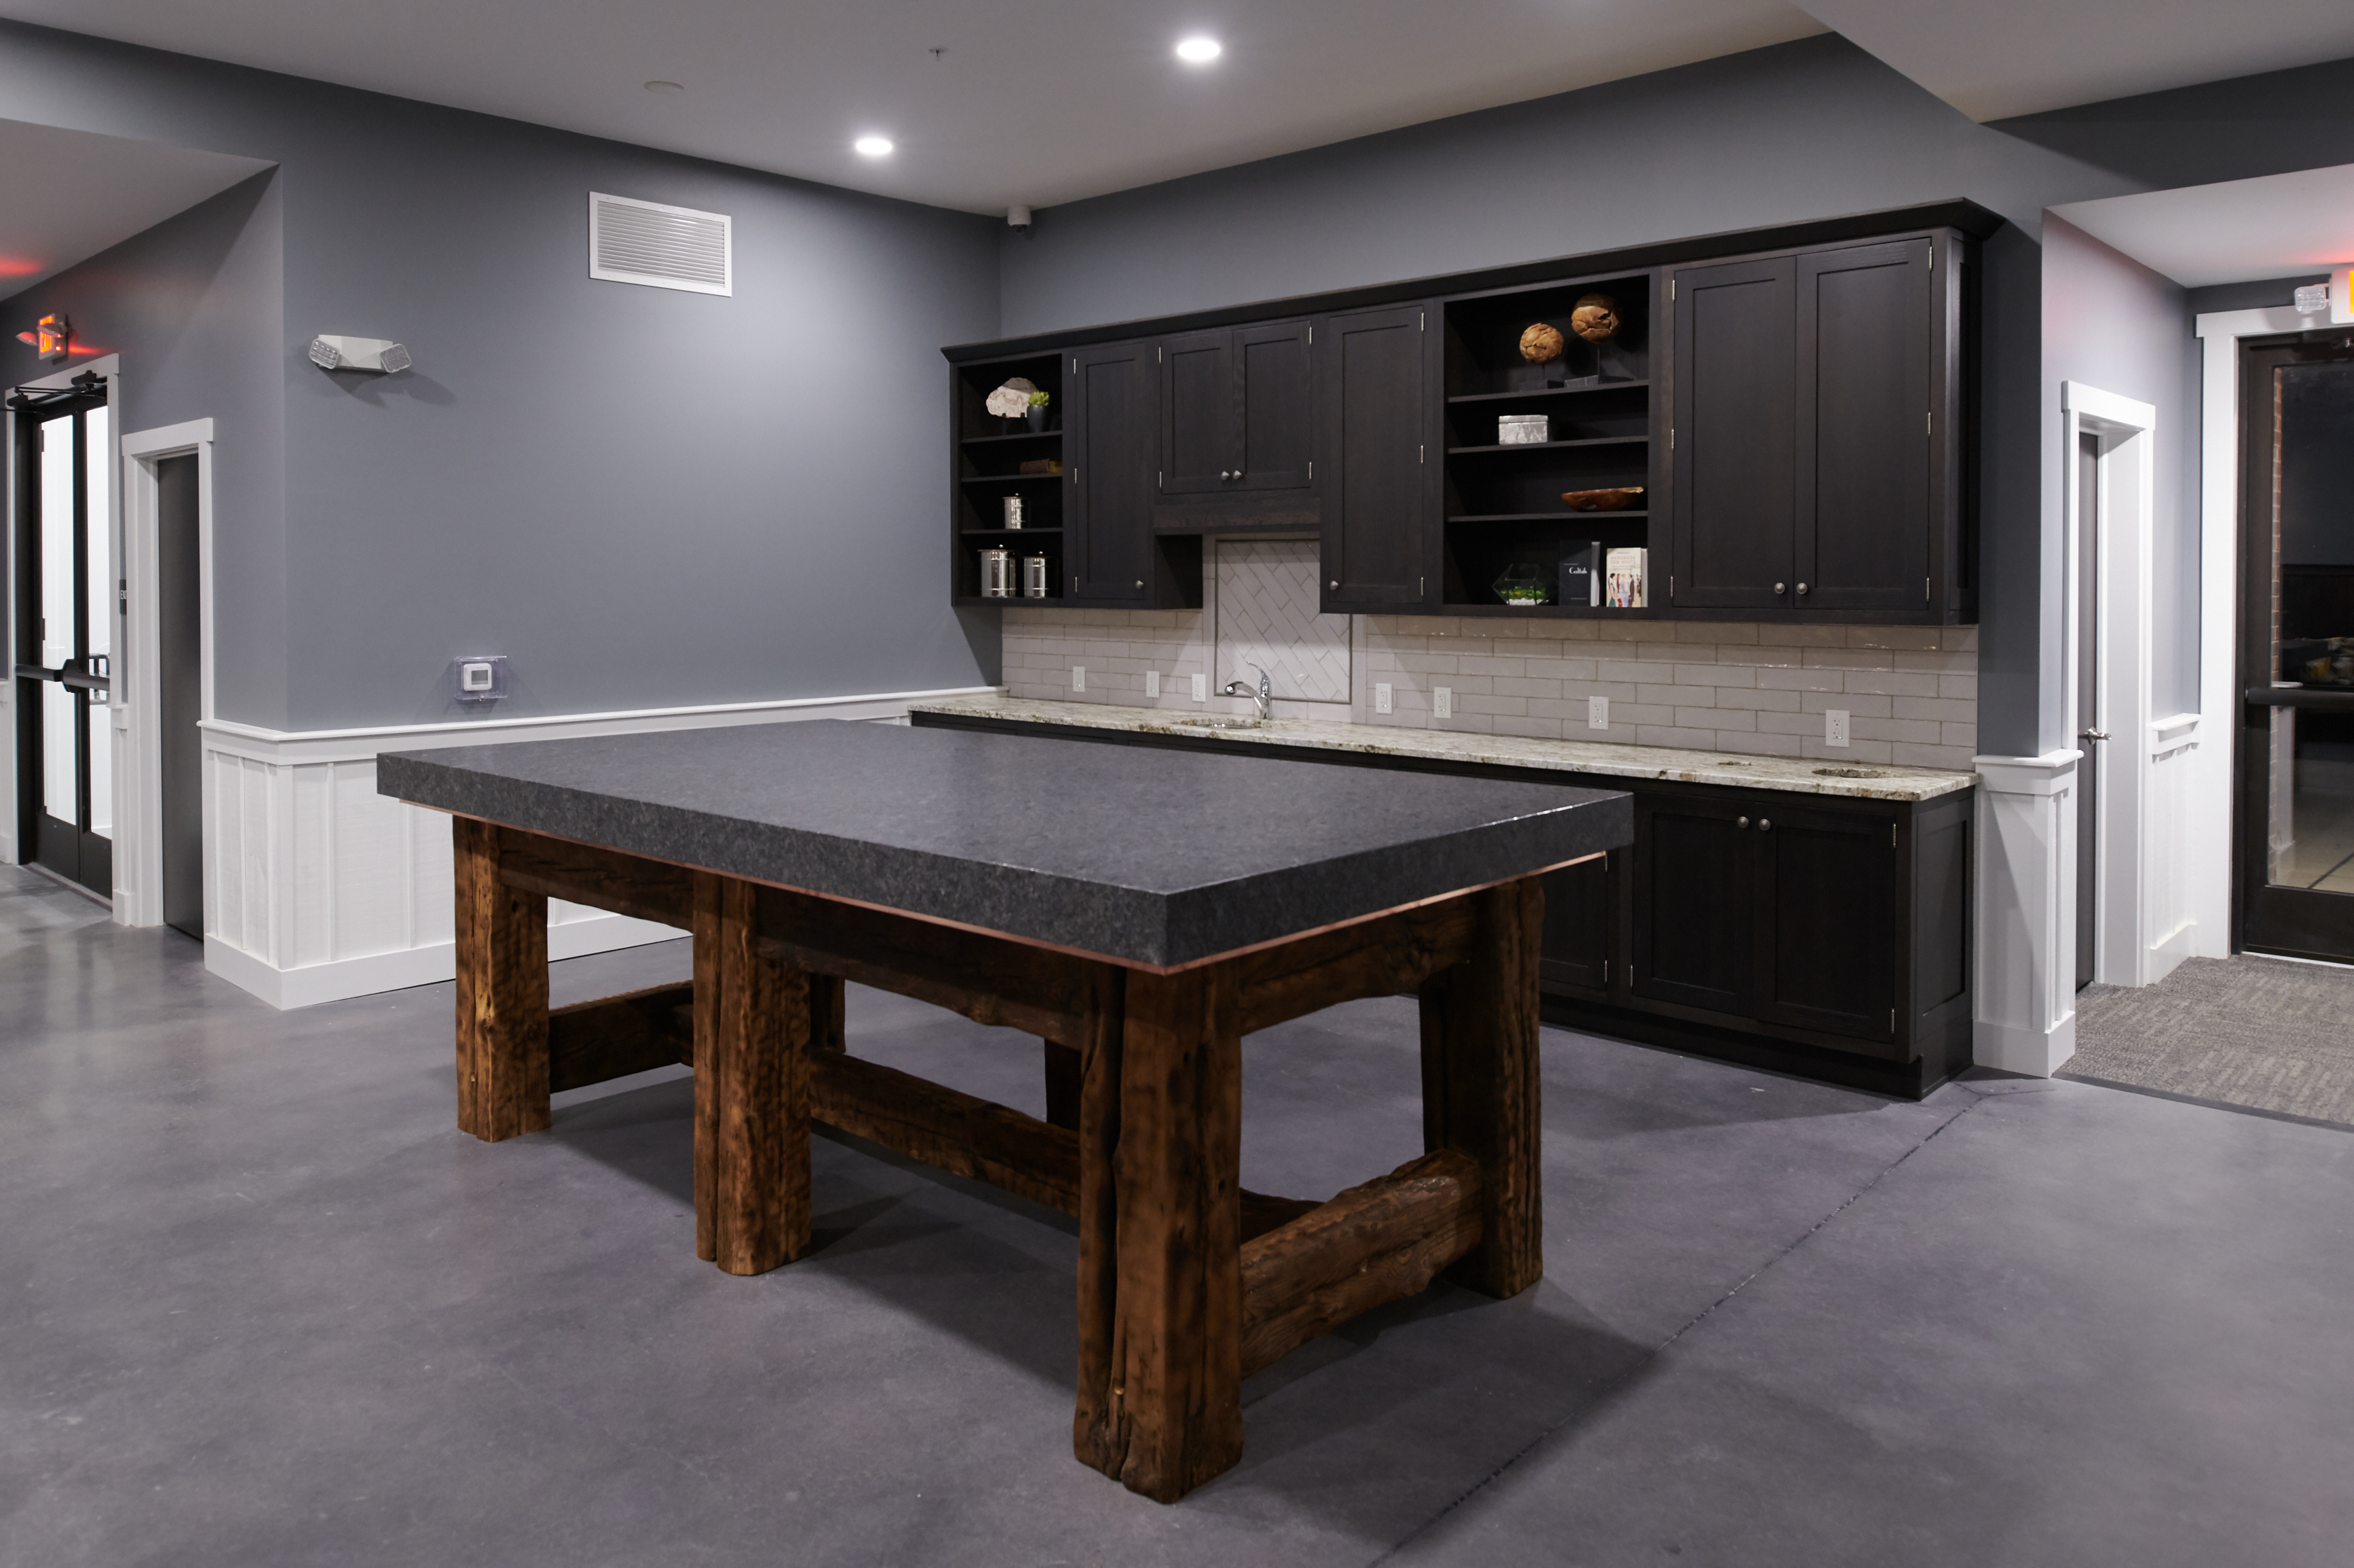 Dining area at the Verde clubhouse with a large island, dark brown cabinets, and subway tile backsplash